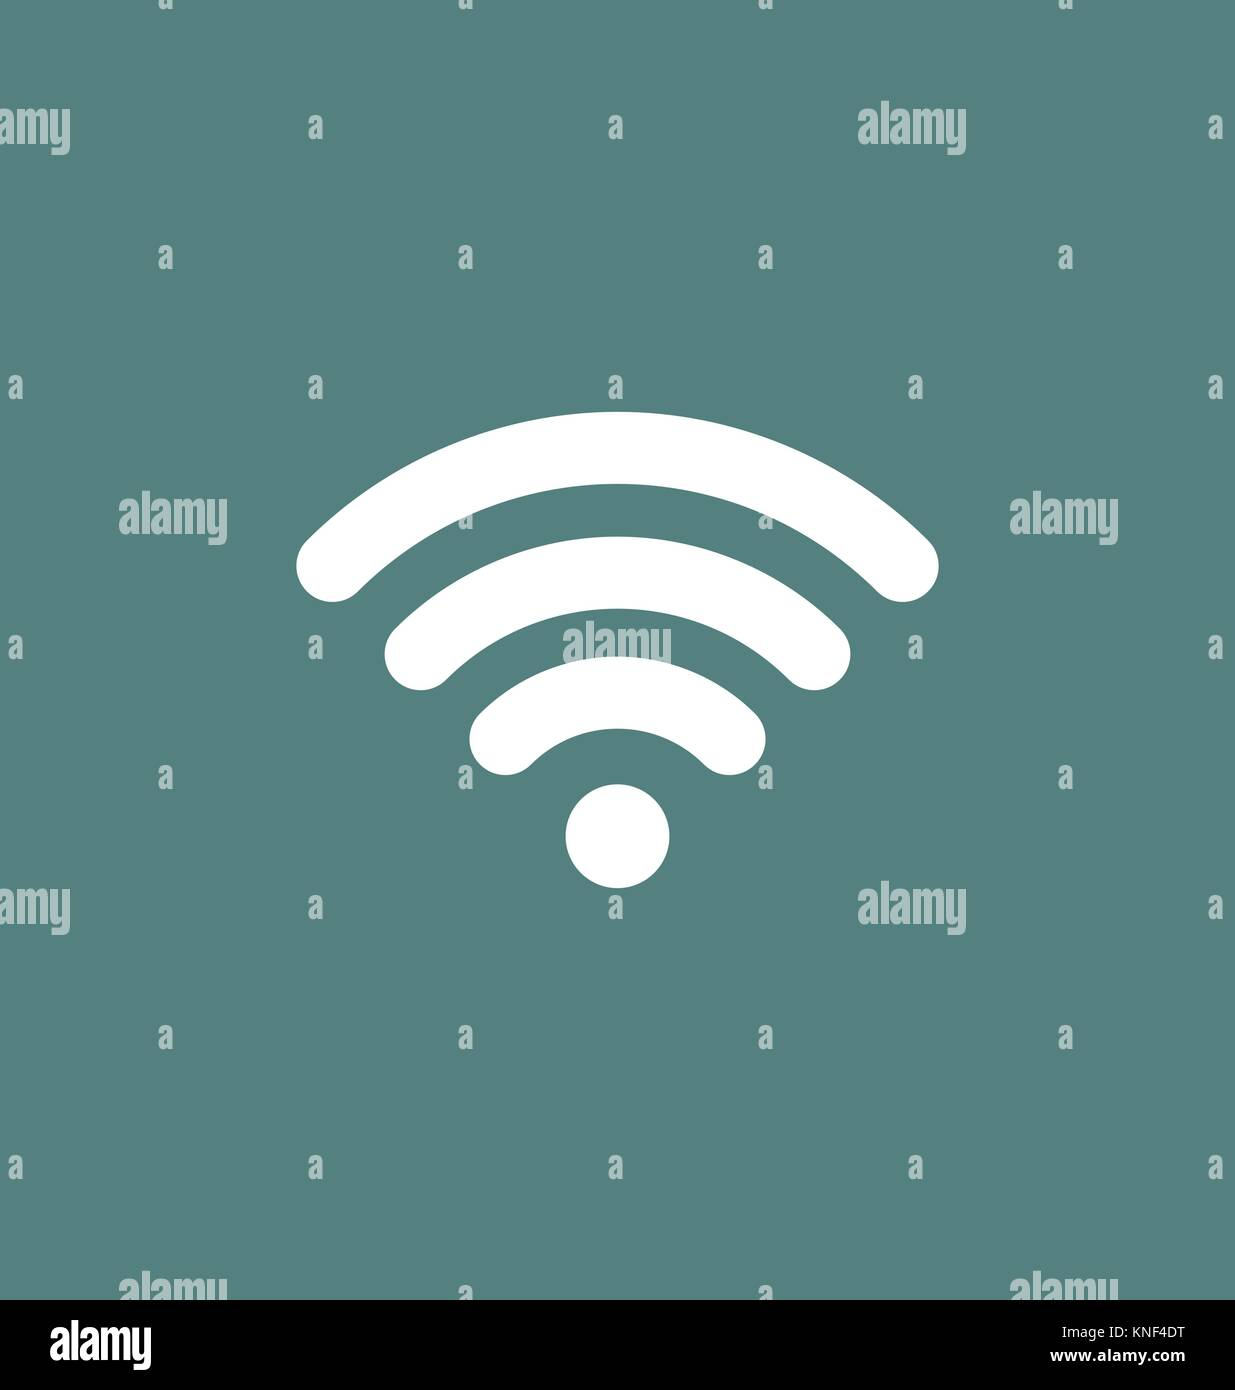 Wifi icon connection. Wifi signal / coverage symbol vector illustration. - Stock Image